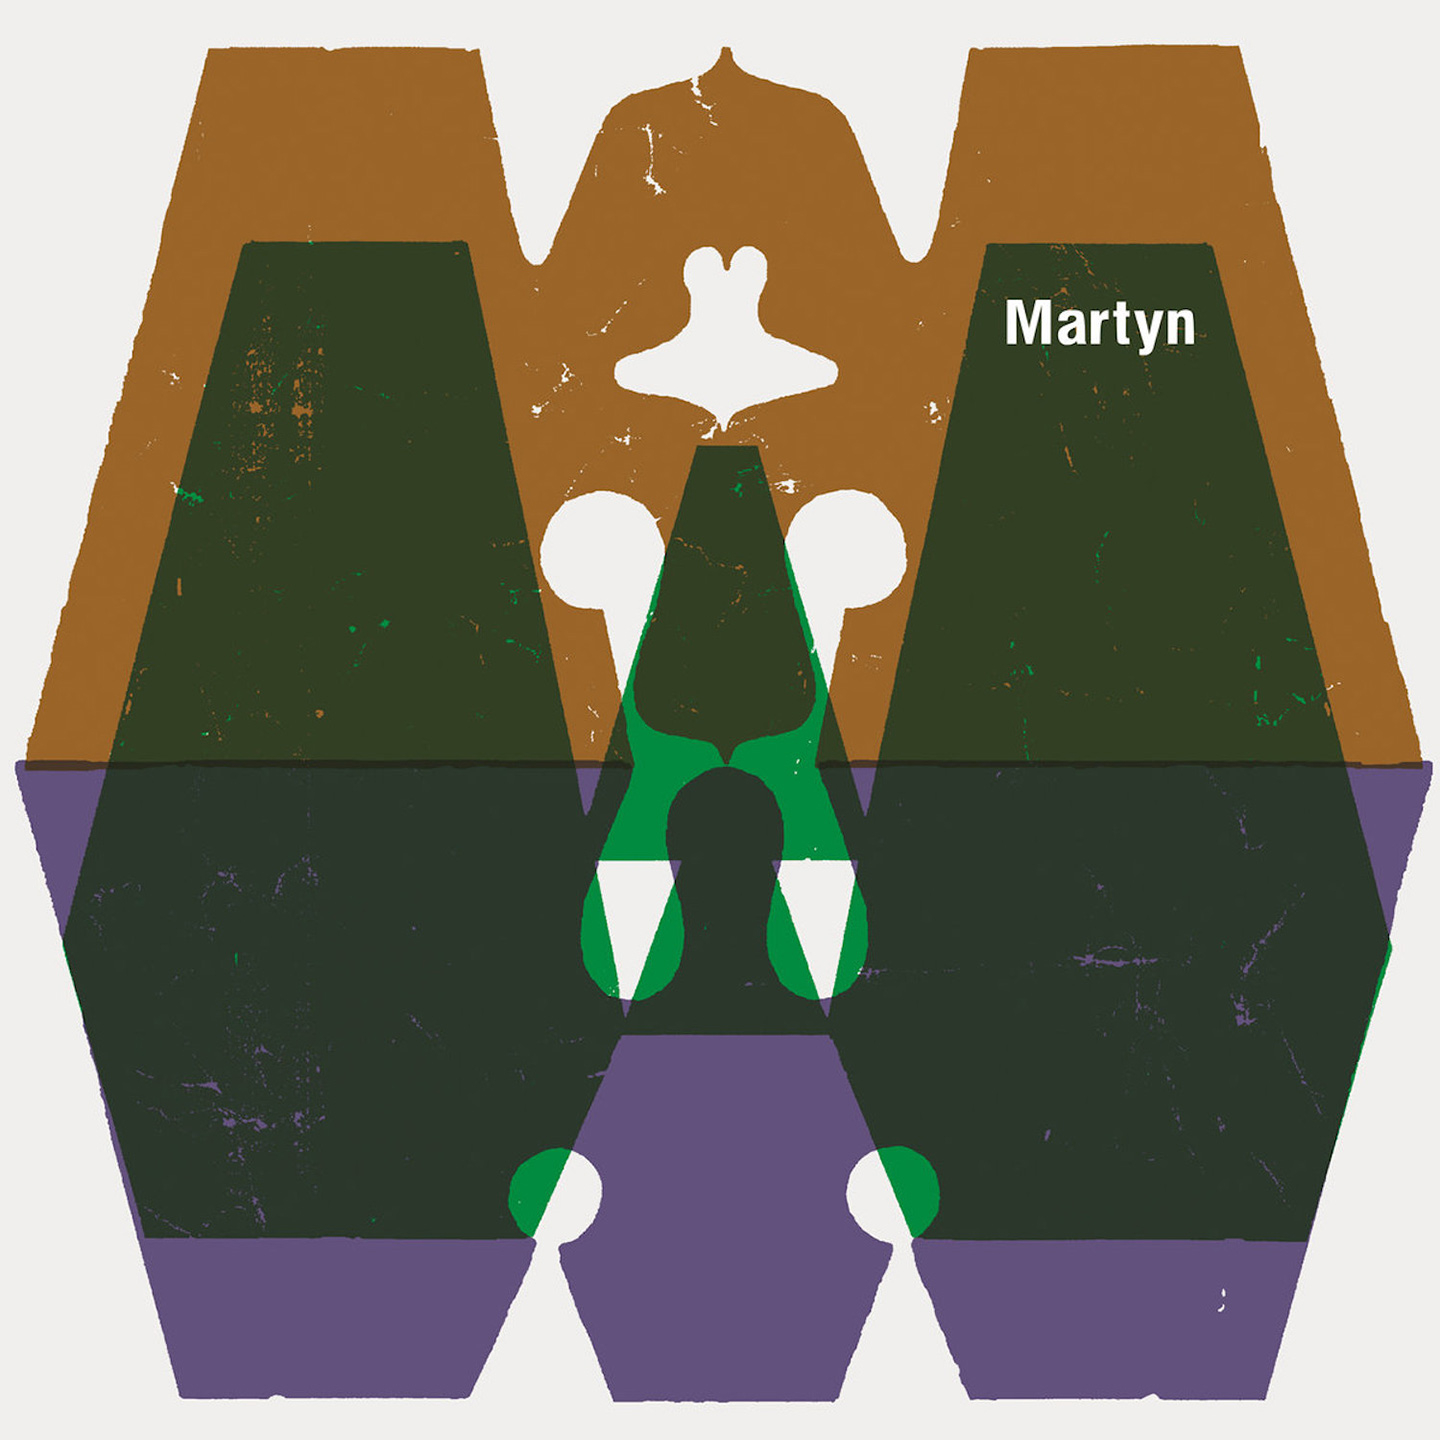 Martyn - Odds Against Us